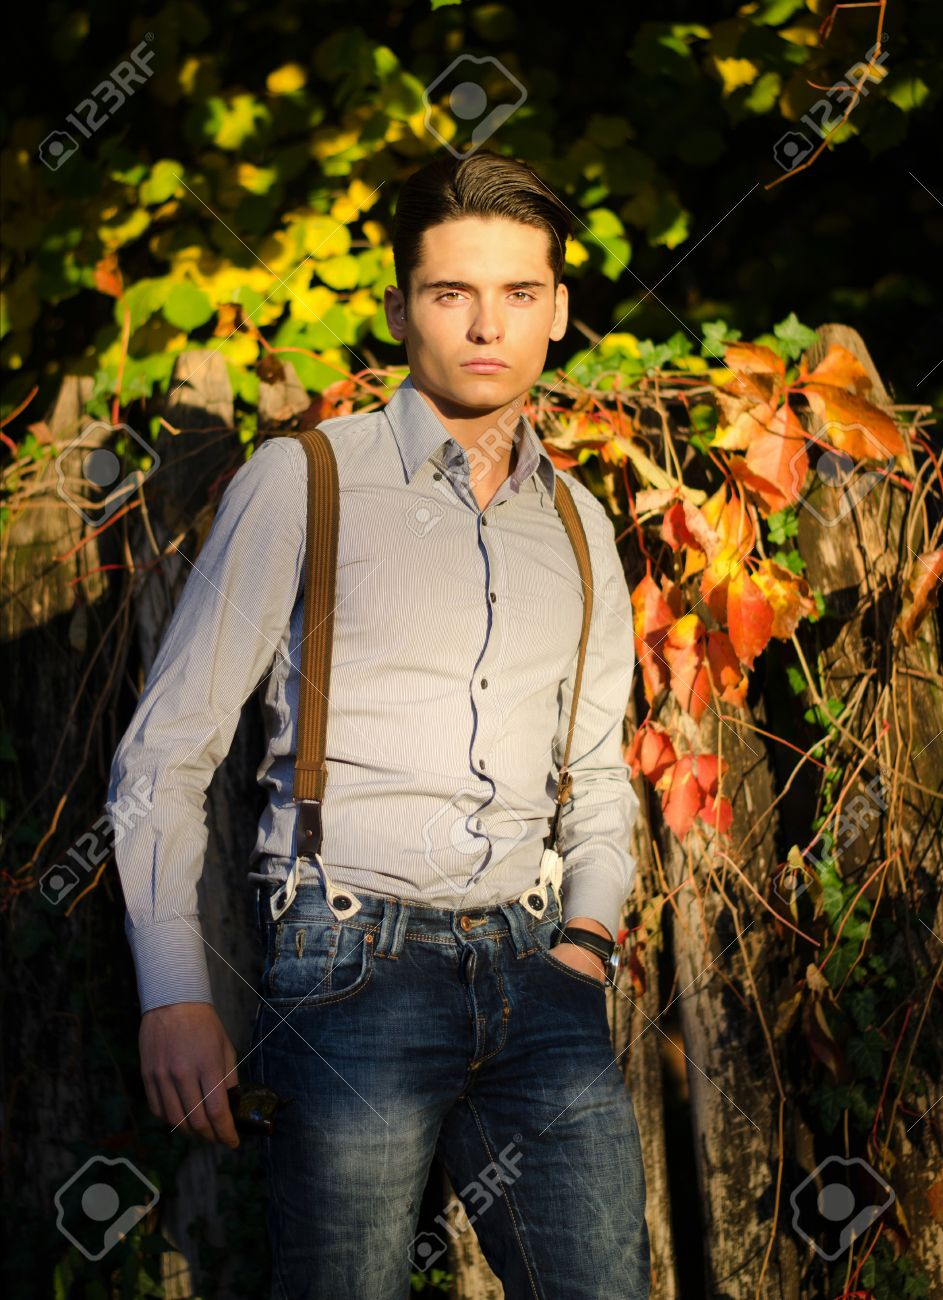 http://delbaraneh.com/wp-content/uploads/2016/10/16404154-Attractive-young-male-model-outdoors-in-nature-in-beautiful-sunset--Stock-Photo.jpg